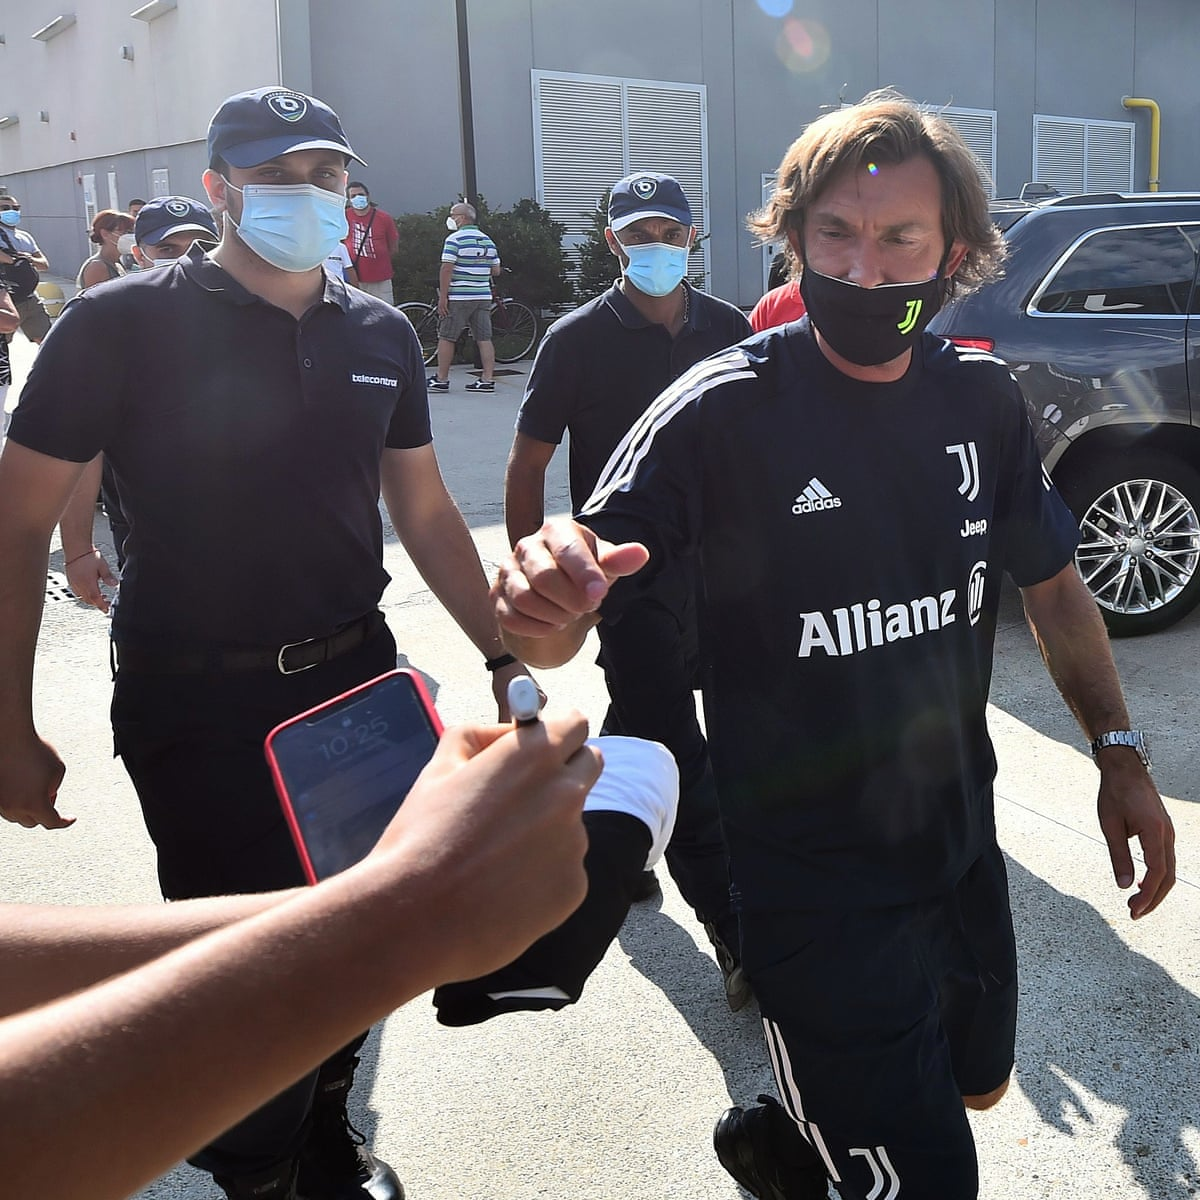 Serie A Kicks Off With All Eyes On Juve S Remarkable Andrea Pirlo Gamble Serie A The Guardian